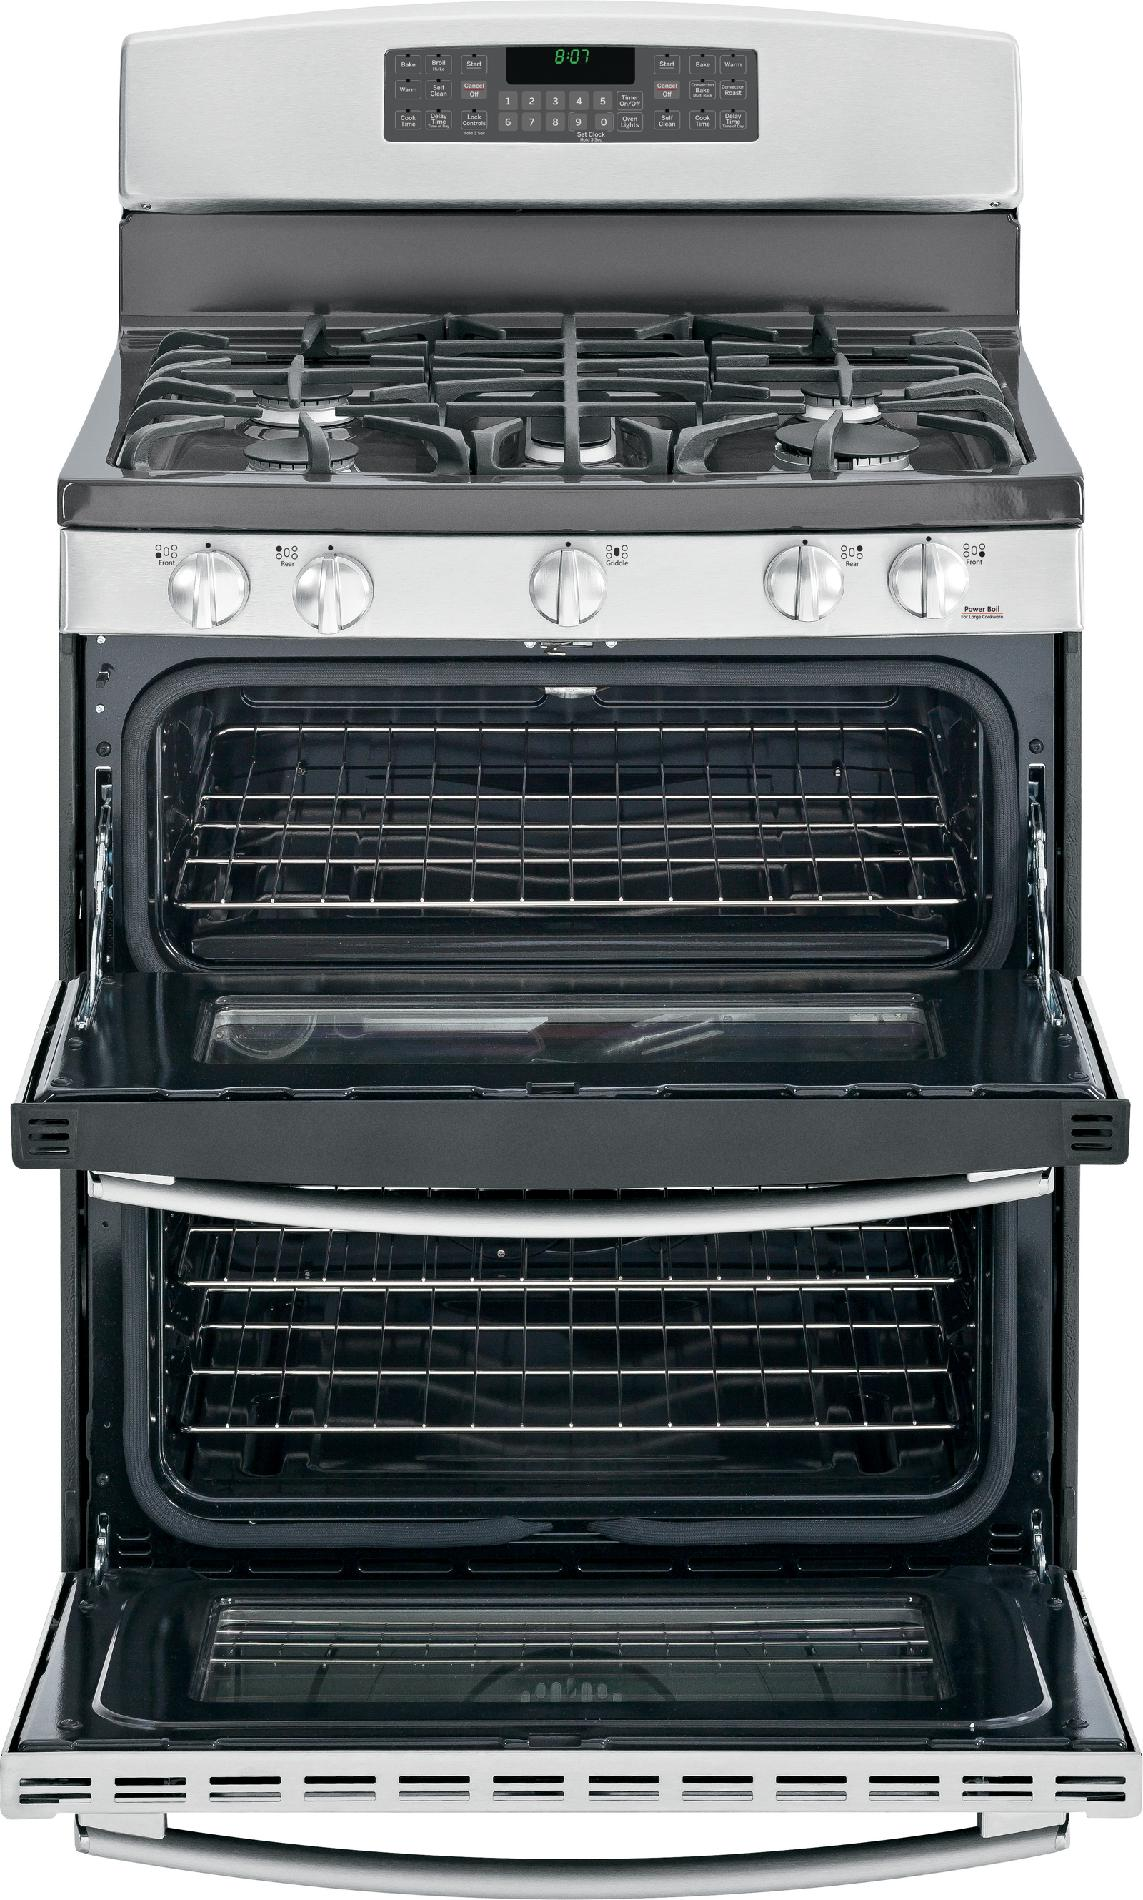 GE Appliances 6.8 cu. ft. Gas Range w/ Double Oven  Convection - Stainless